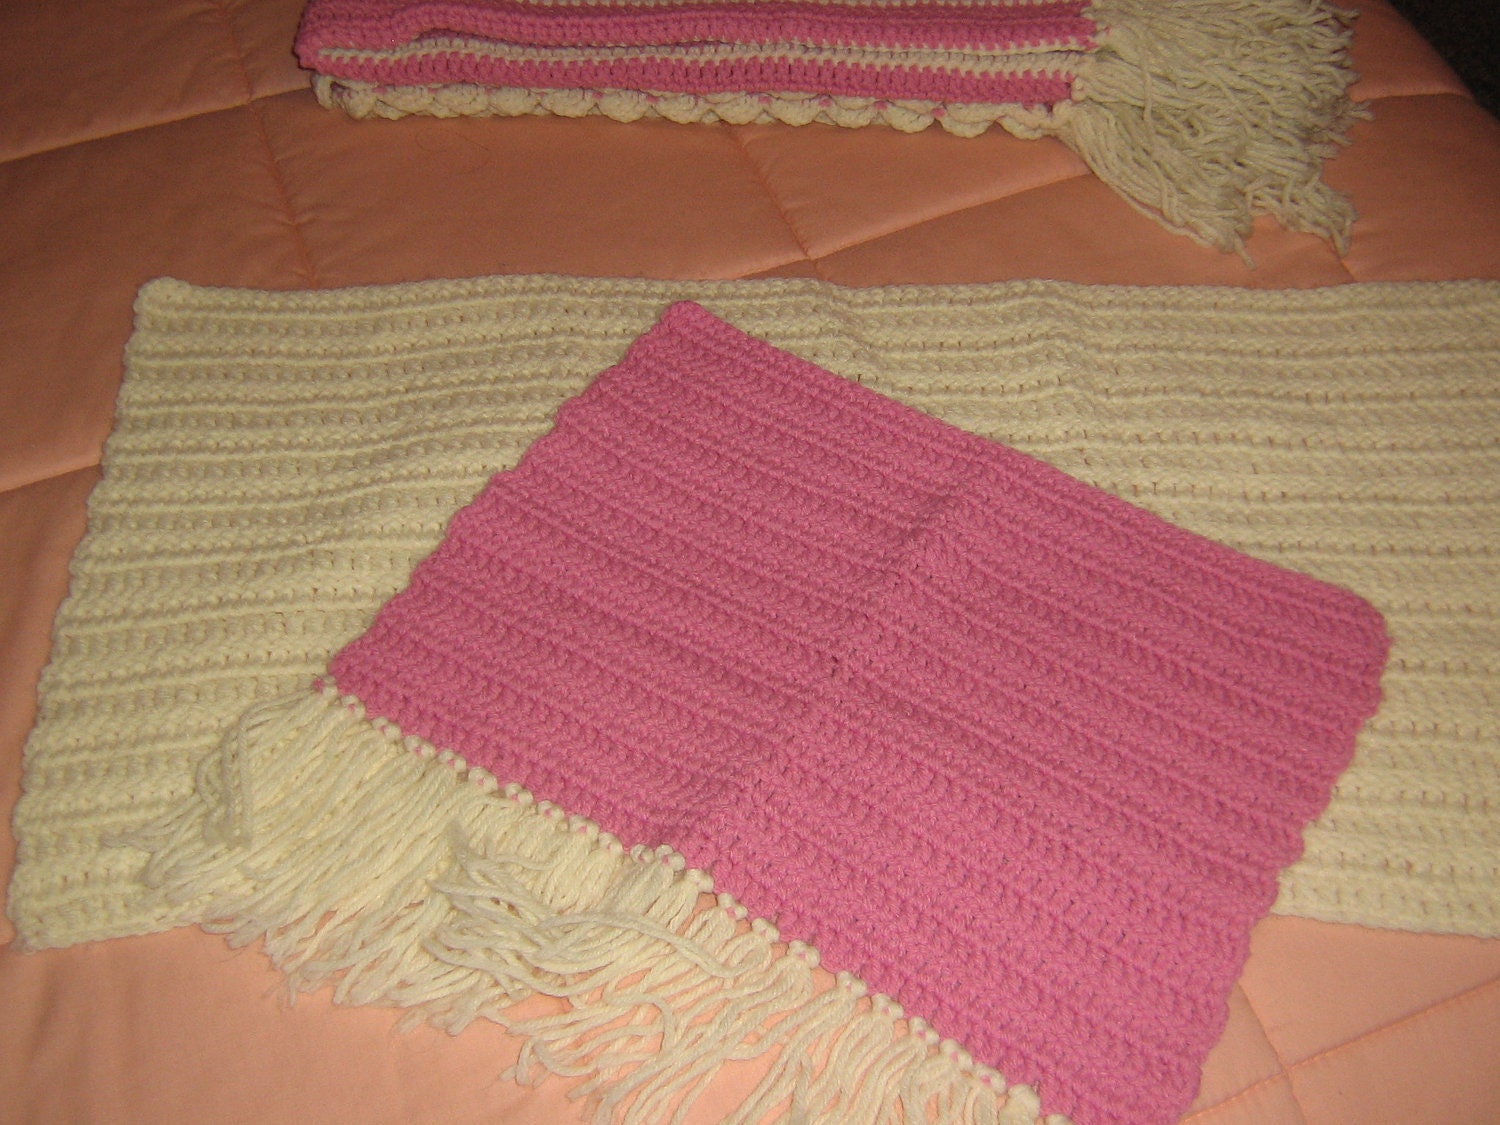 Crocheted Furniture Doilies By Gemmasfavoritethings On Etsy